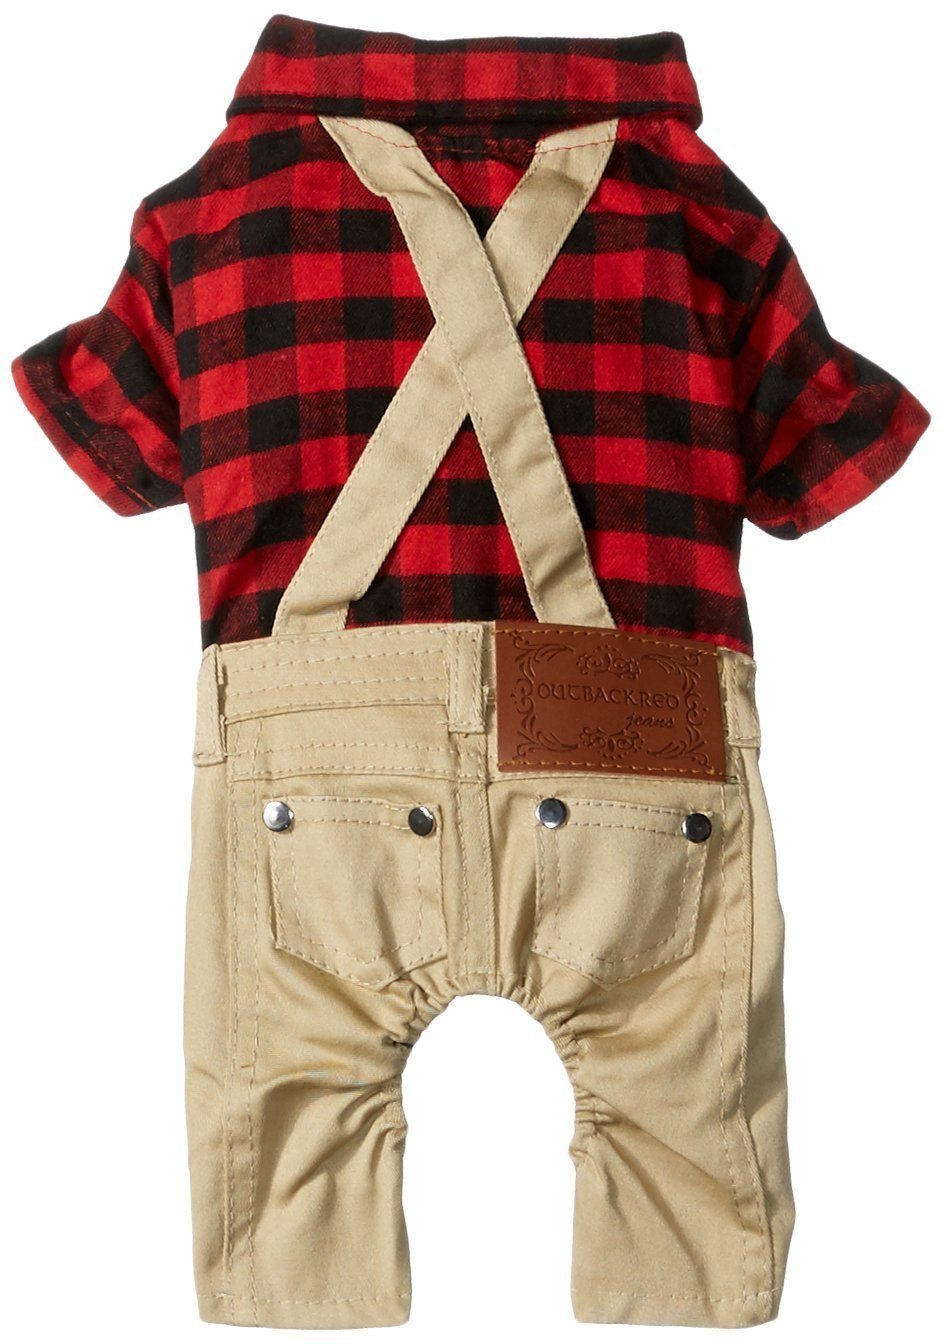 SMALLLEE_LUCKY_STORE Pet Clothes for Dogs Cat Red Plaid Shirts Sweater with Khaki Overalls Pants Jumpsuit Outfits XY000231-M